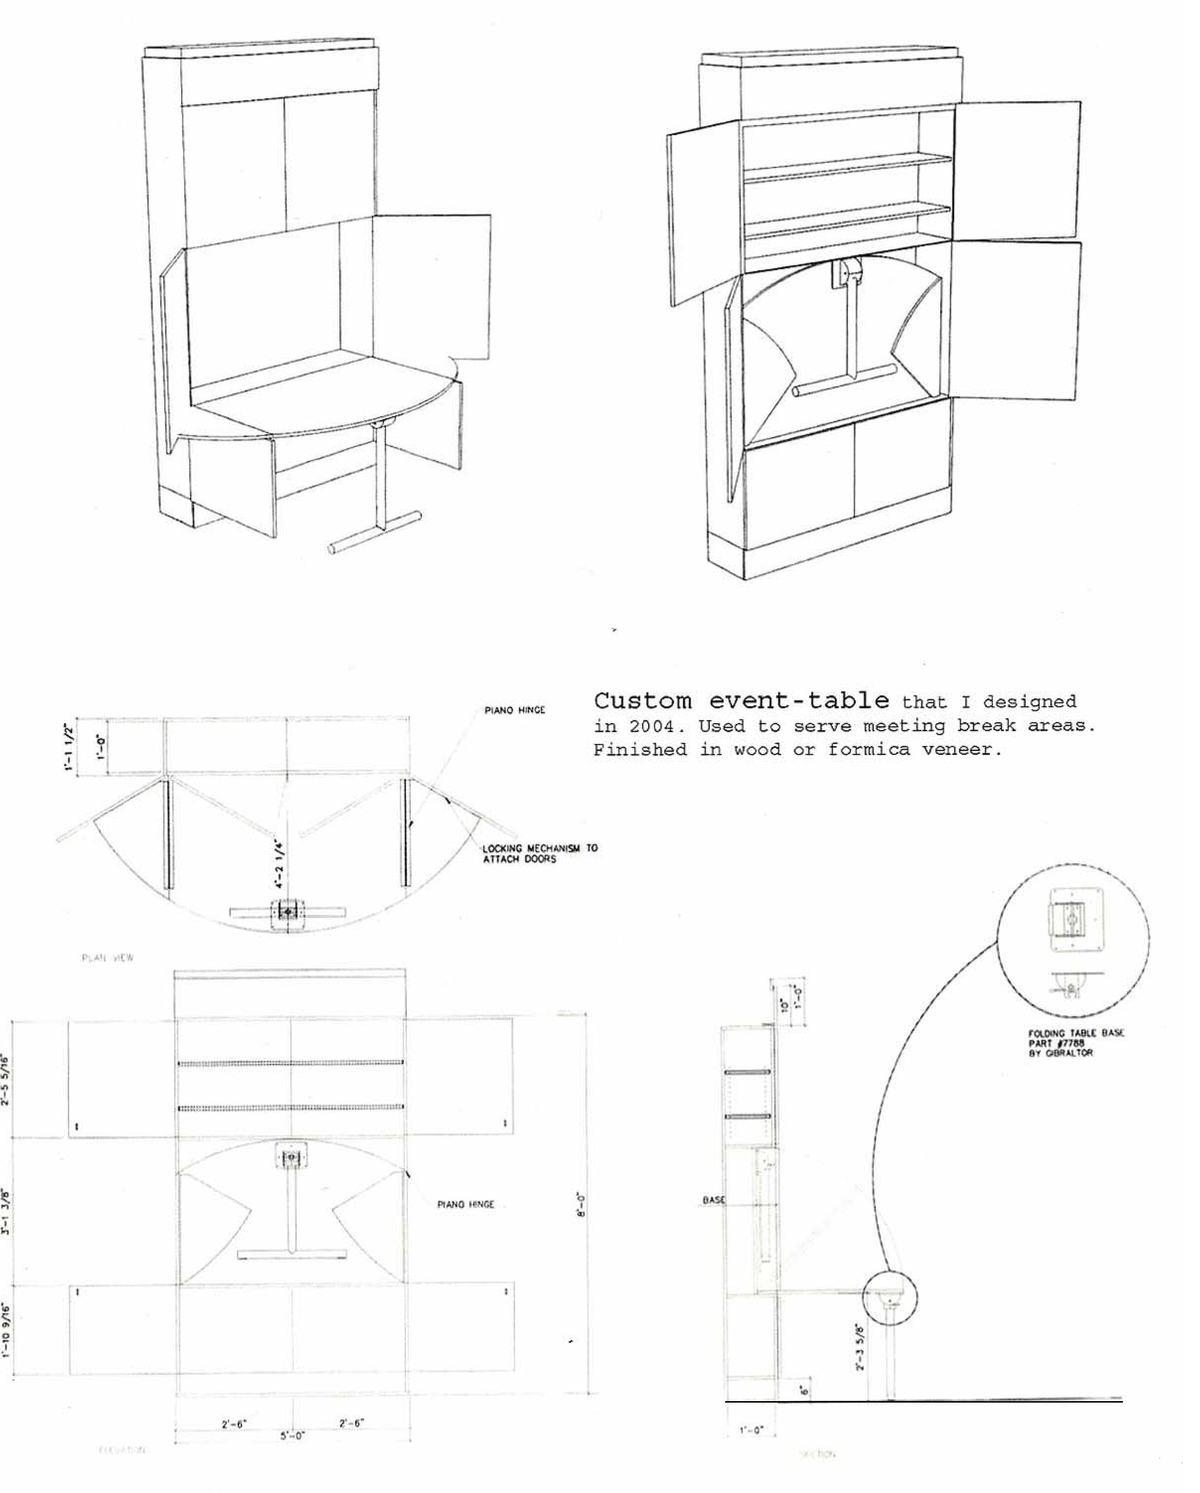 Sectional Elevation Of Sofa Memsaheb Net. Sectional Elevation Of Sofa   memsaheb net